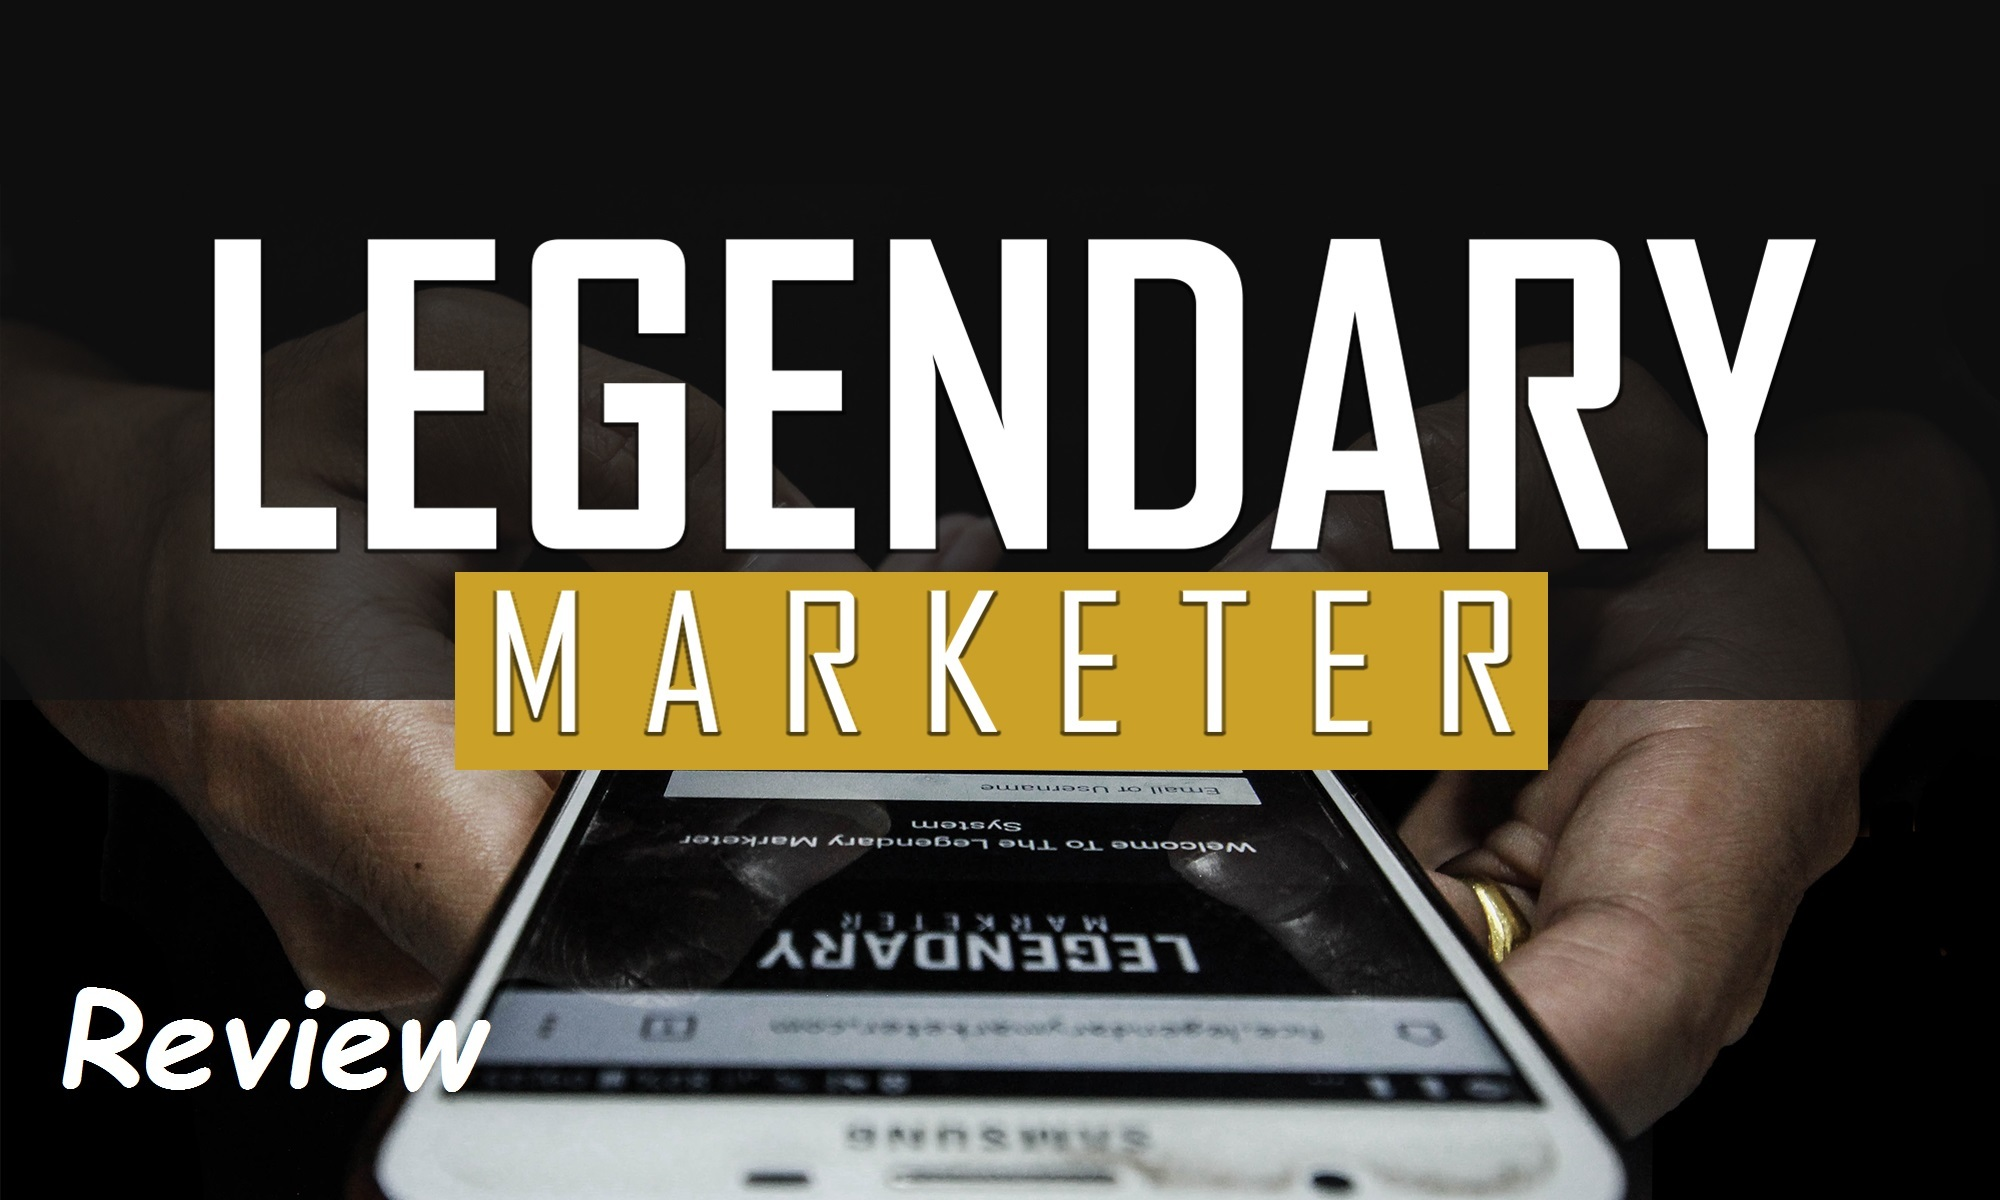 Internet Marketing Program Legendary Marketer Warranty Management